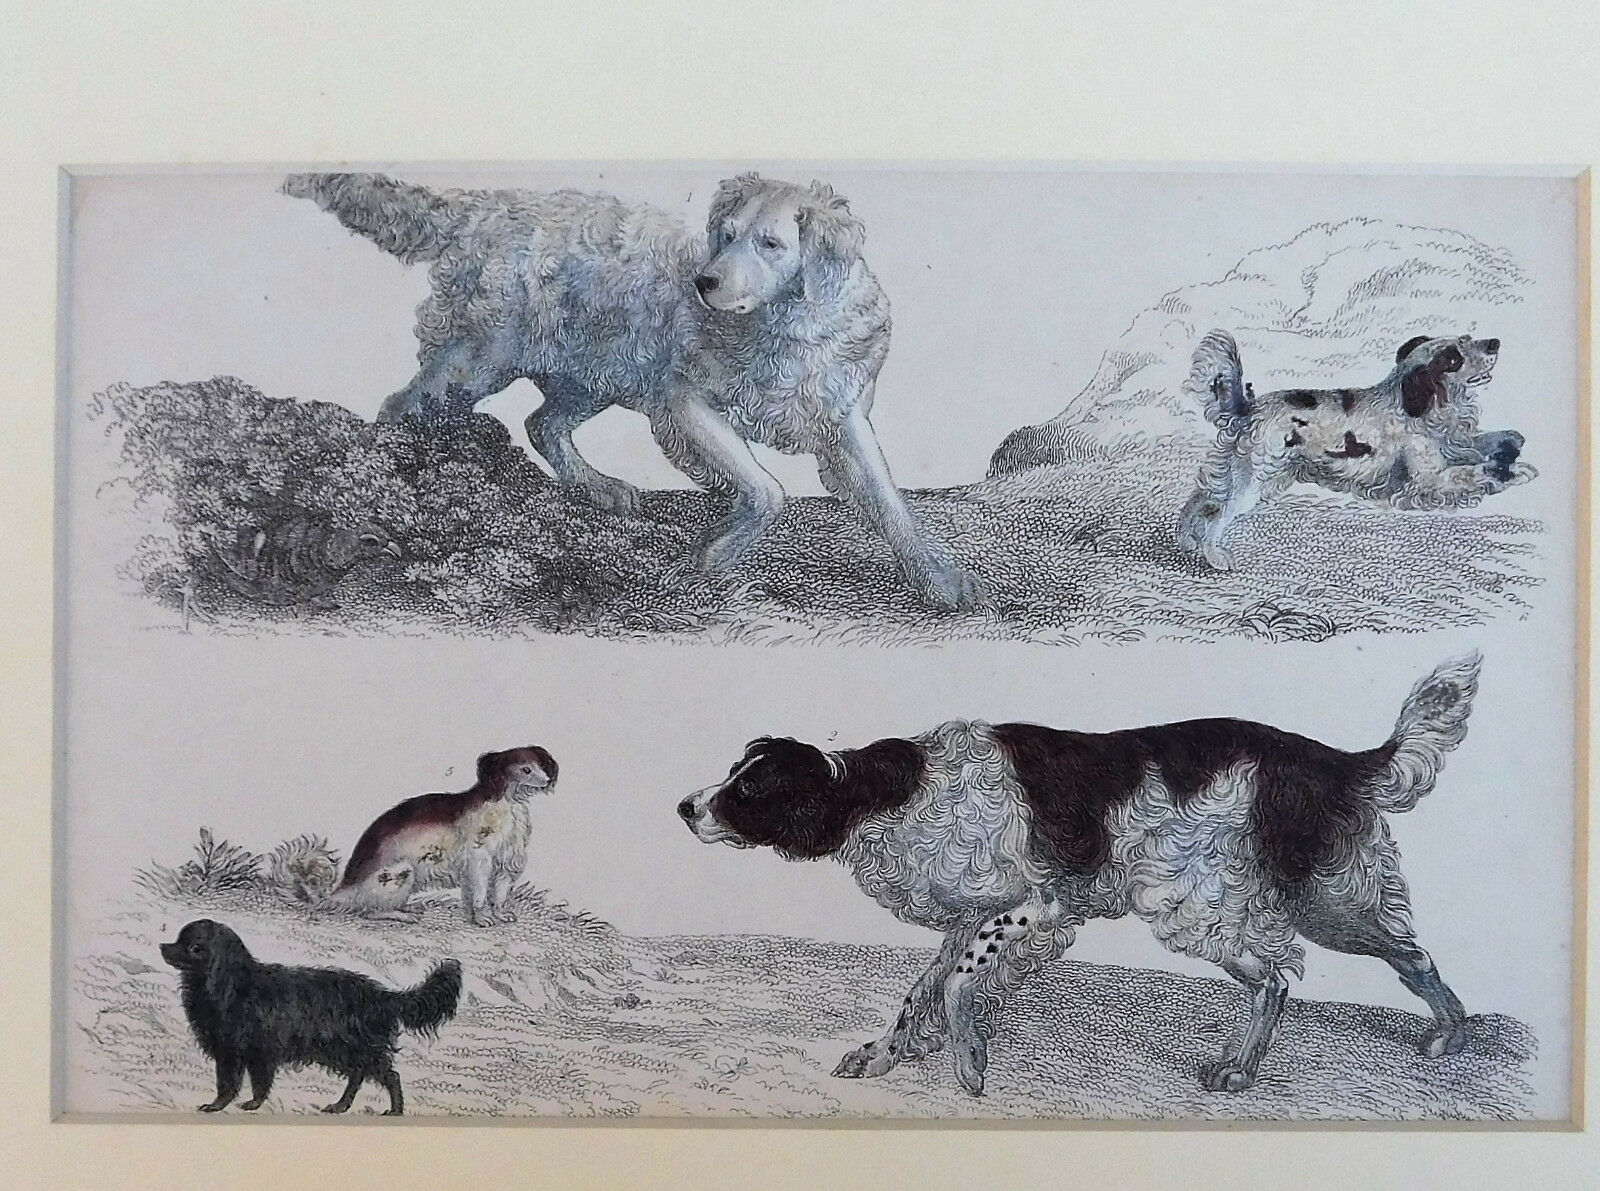 Vintage engraving of gun dogs retrievers old breed of dog animal picture mounted